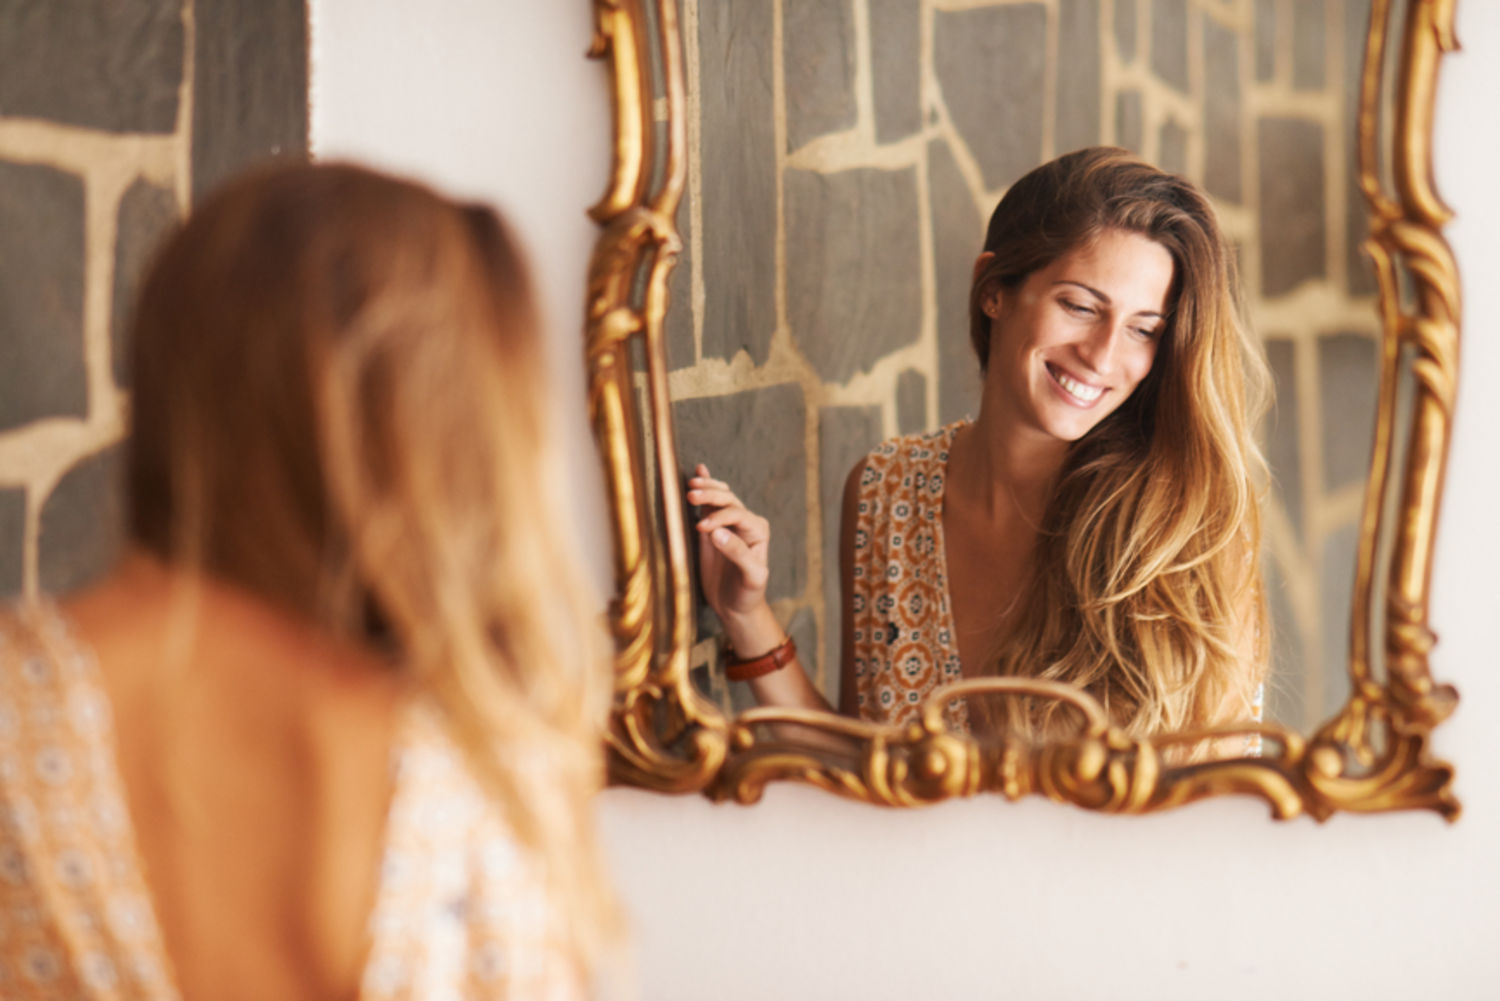 woman reflection self esteem image mirror stocksy main 12 Habits that Change Life, which you can start Today